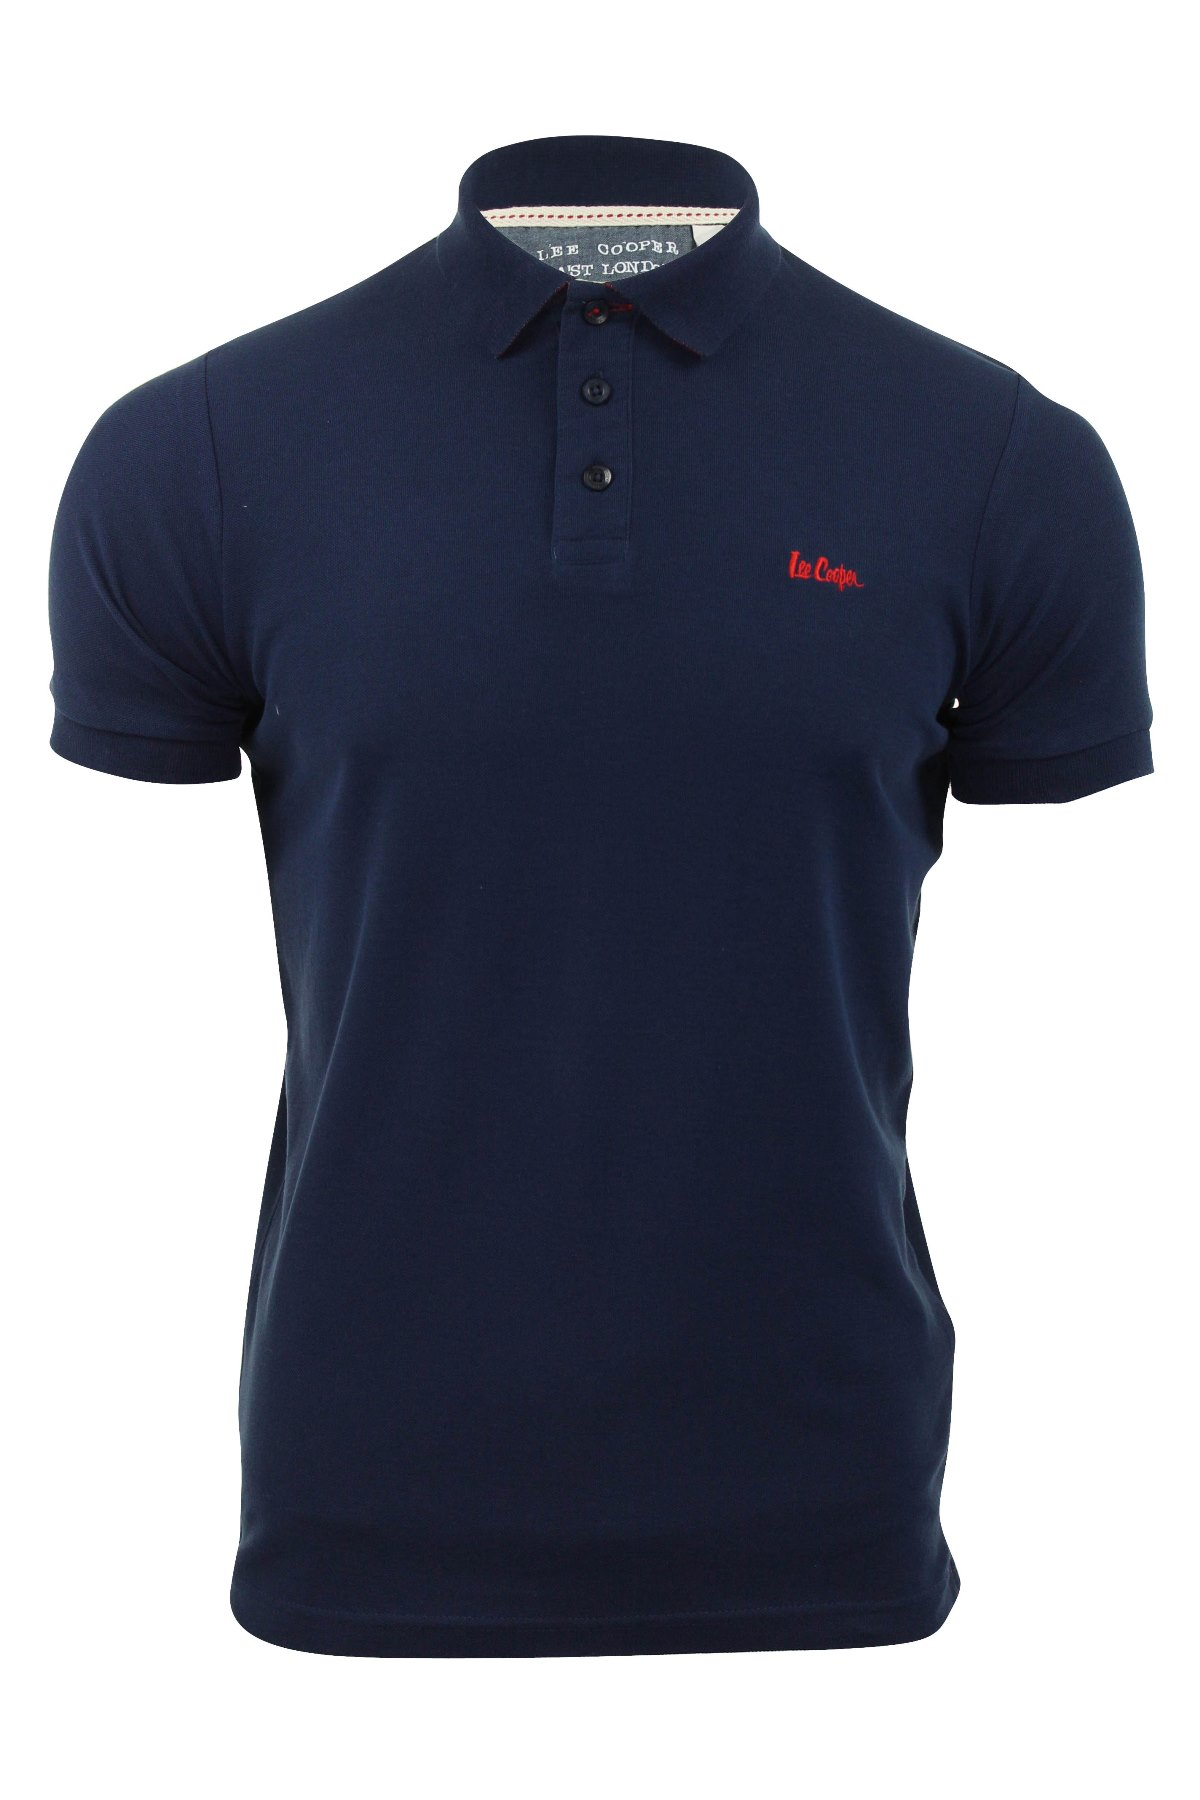 mens pique polo shirt lee cooper premium range 39 woburn 39 t shirts ebay. Black Bedroom Furniture Sets. Home Design Ideas